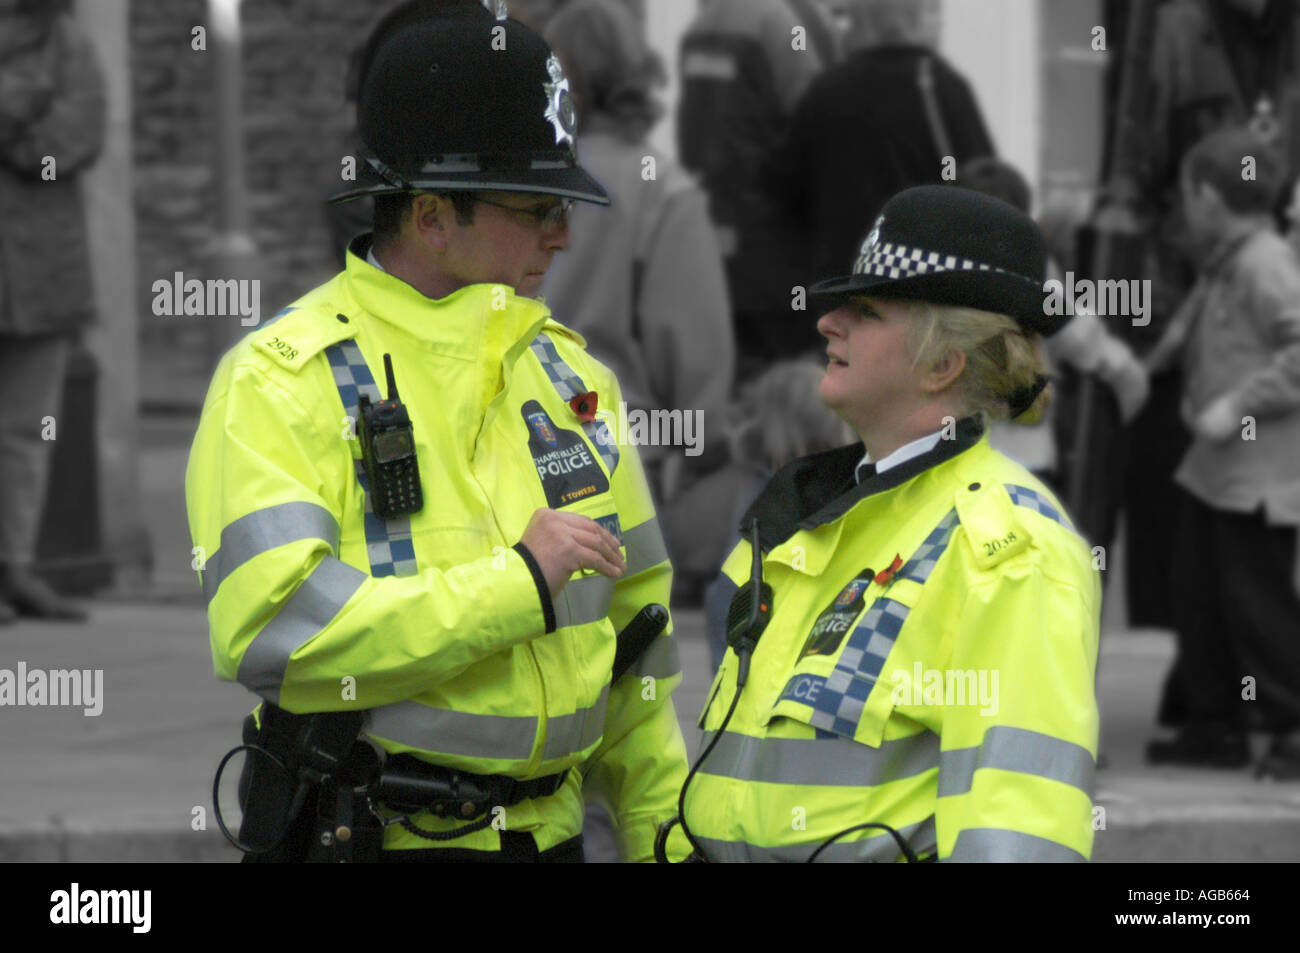 Thames Valley Police officers on duty - Stock Image